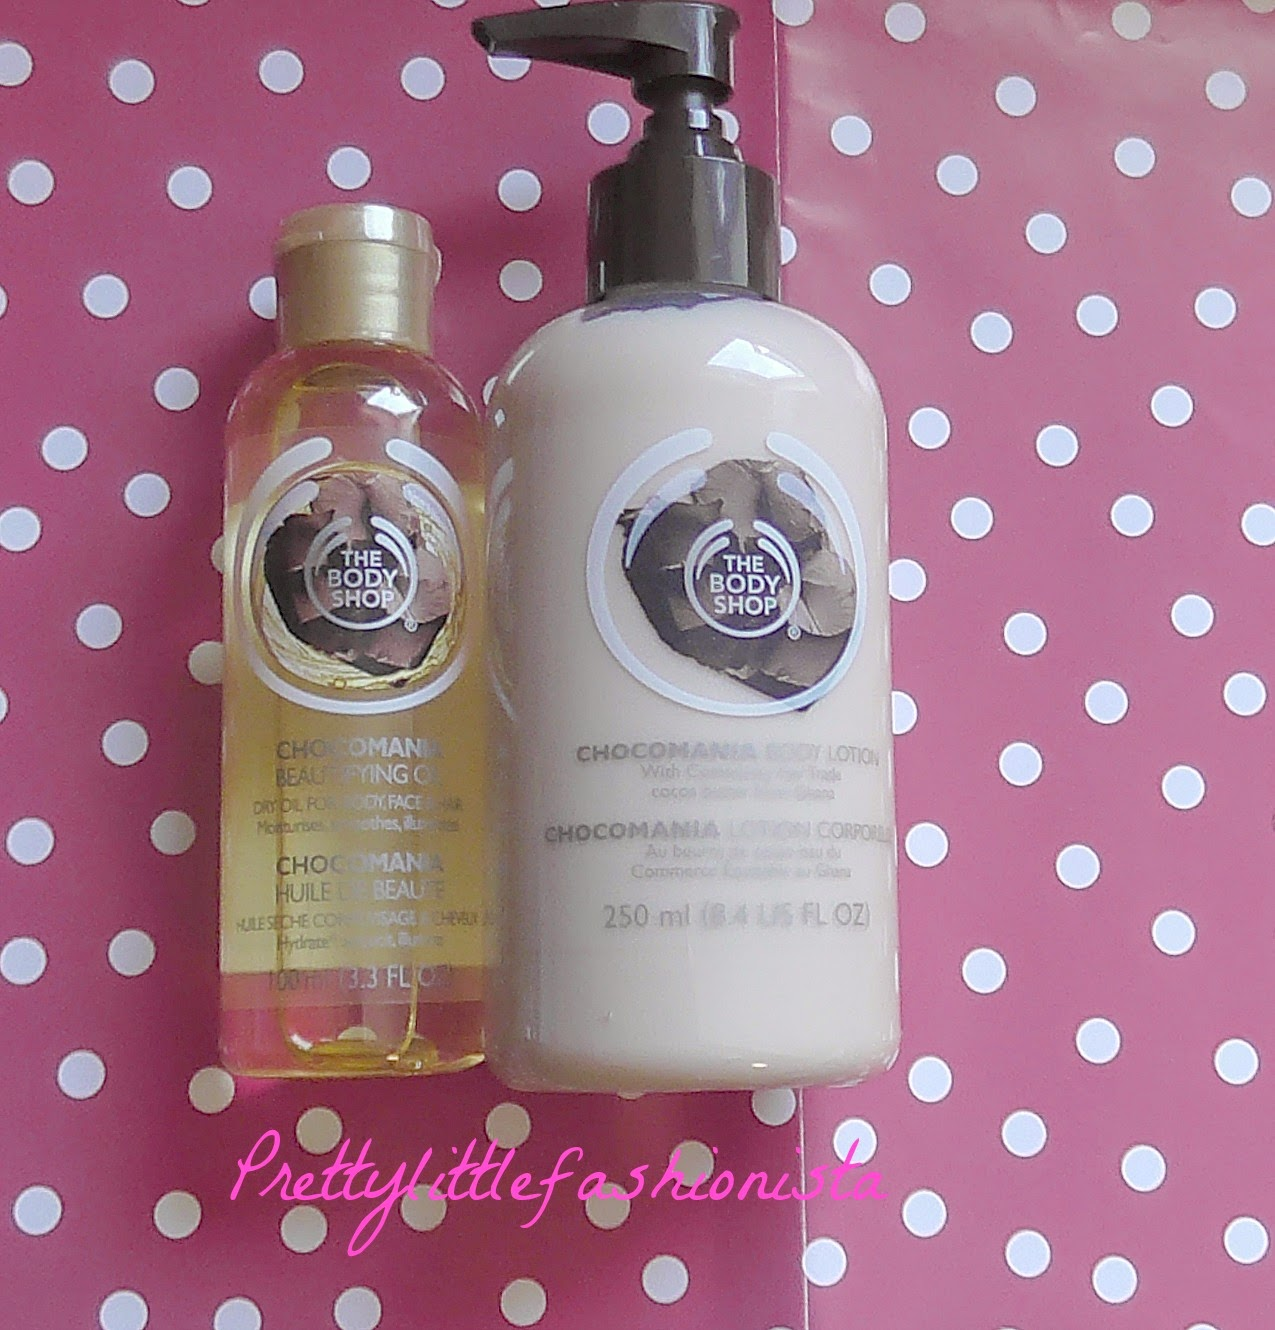 The Body Shop Haul